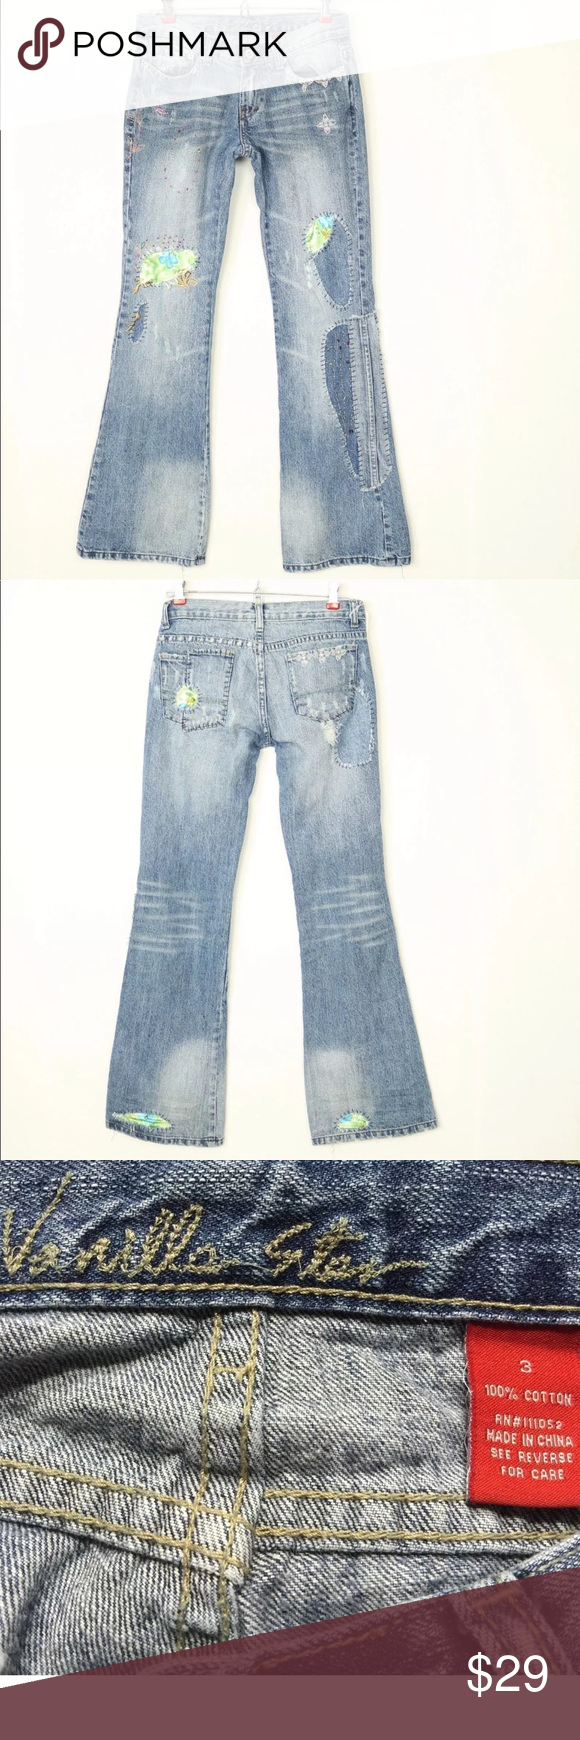 2e9f82b5baf Vanilla Star Jeans Bootcut 3 Patch Beaded Beaded Patchwork Embroidered  Distressed Button and zipper closure Good